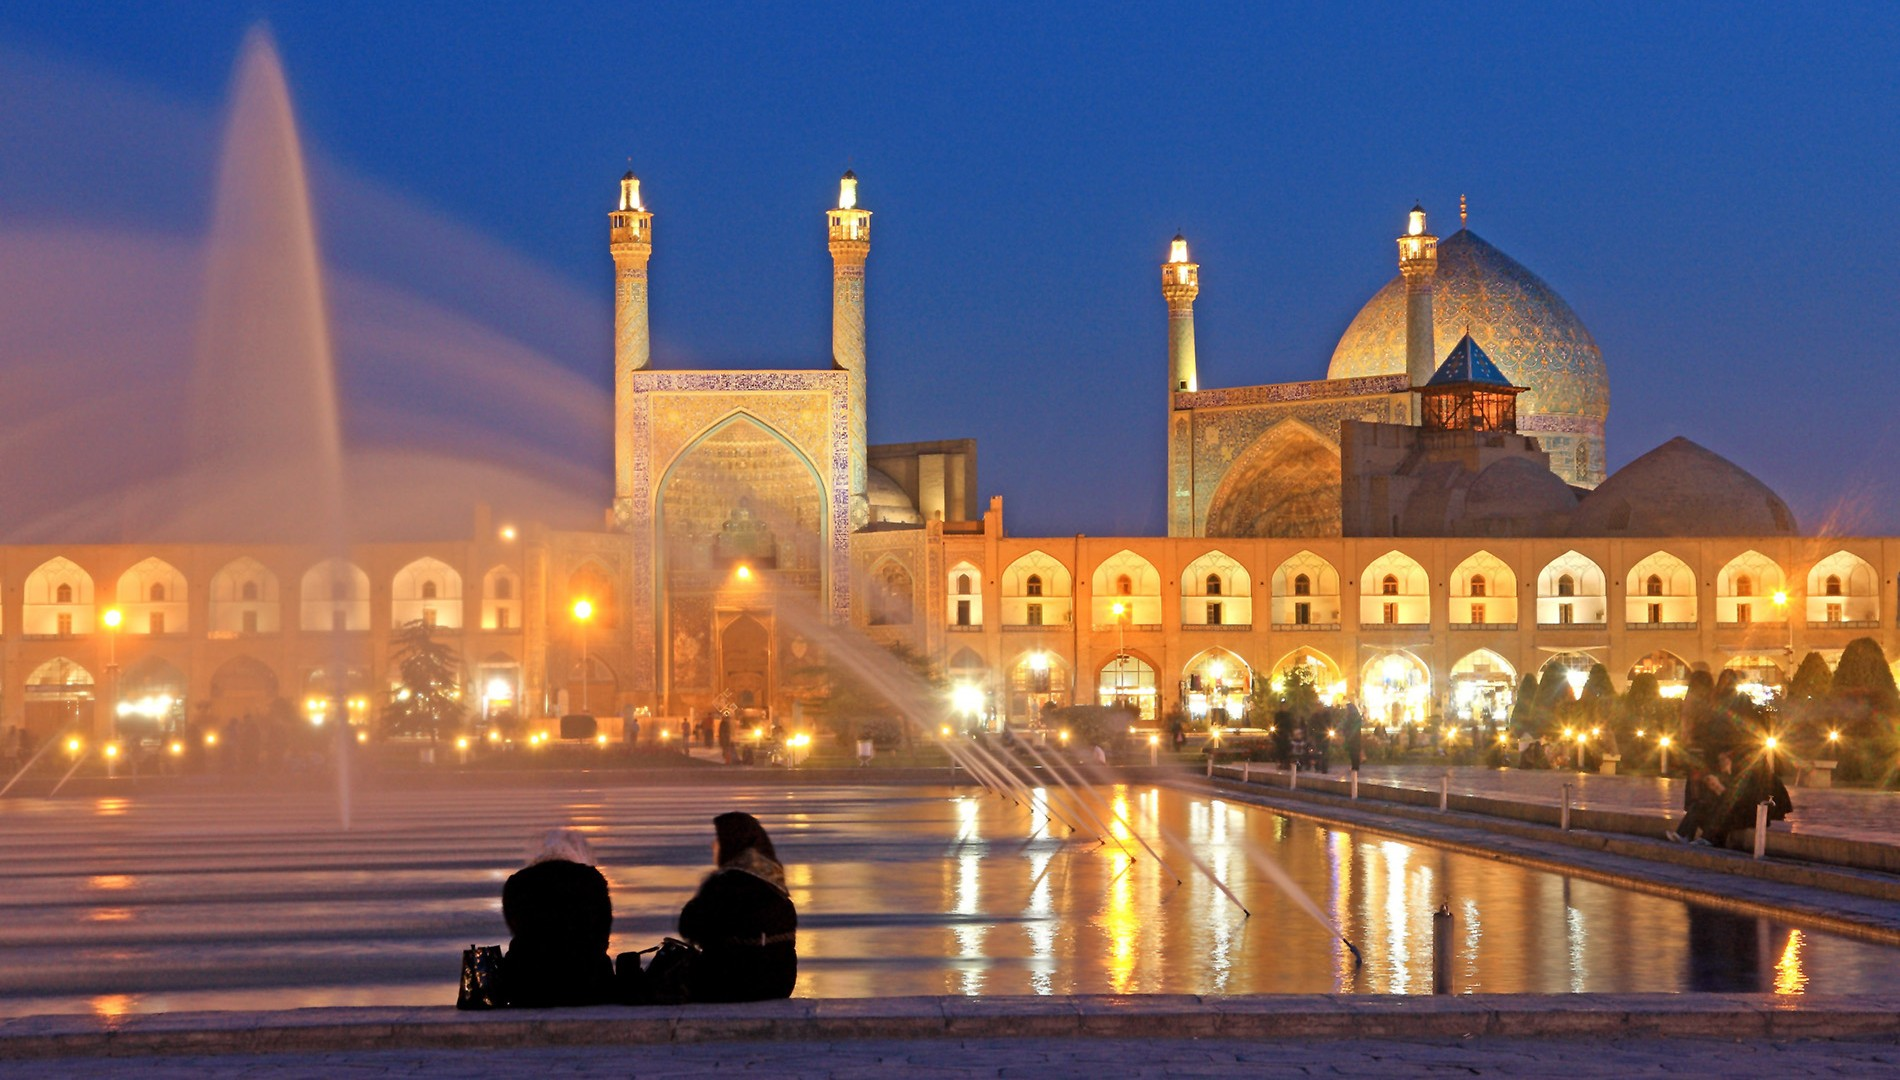 # 2 Jameh Abassi (Royal) Mosque inside Naghsh-e Jahan Sq in Esfahan